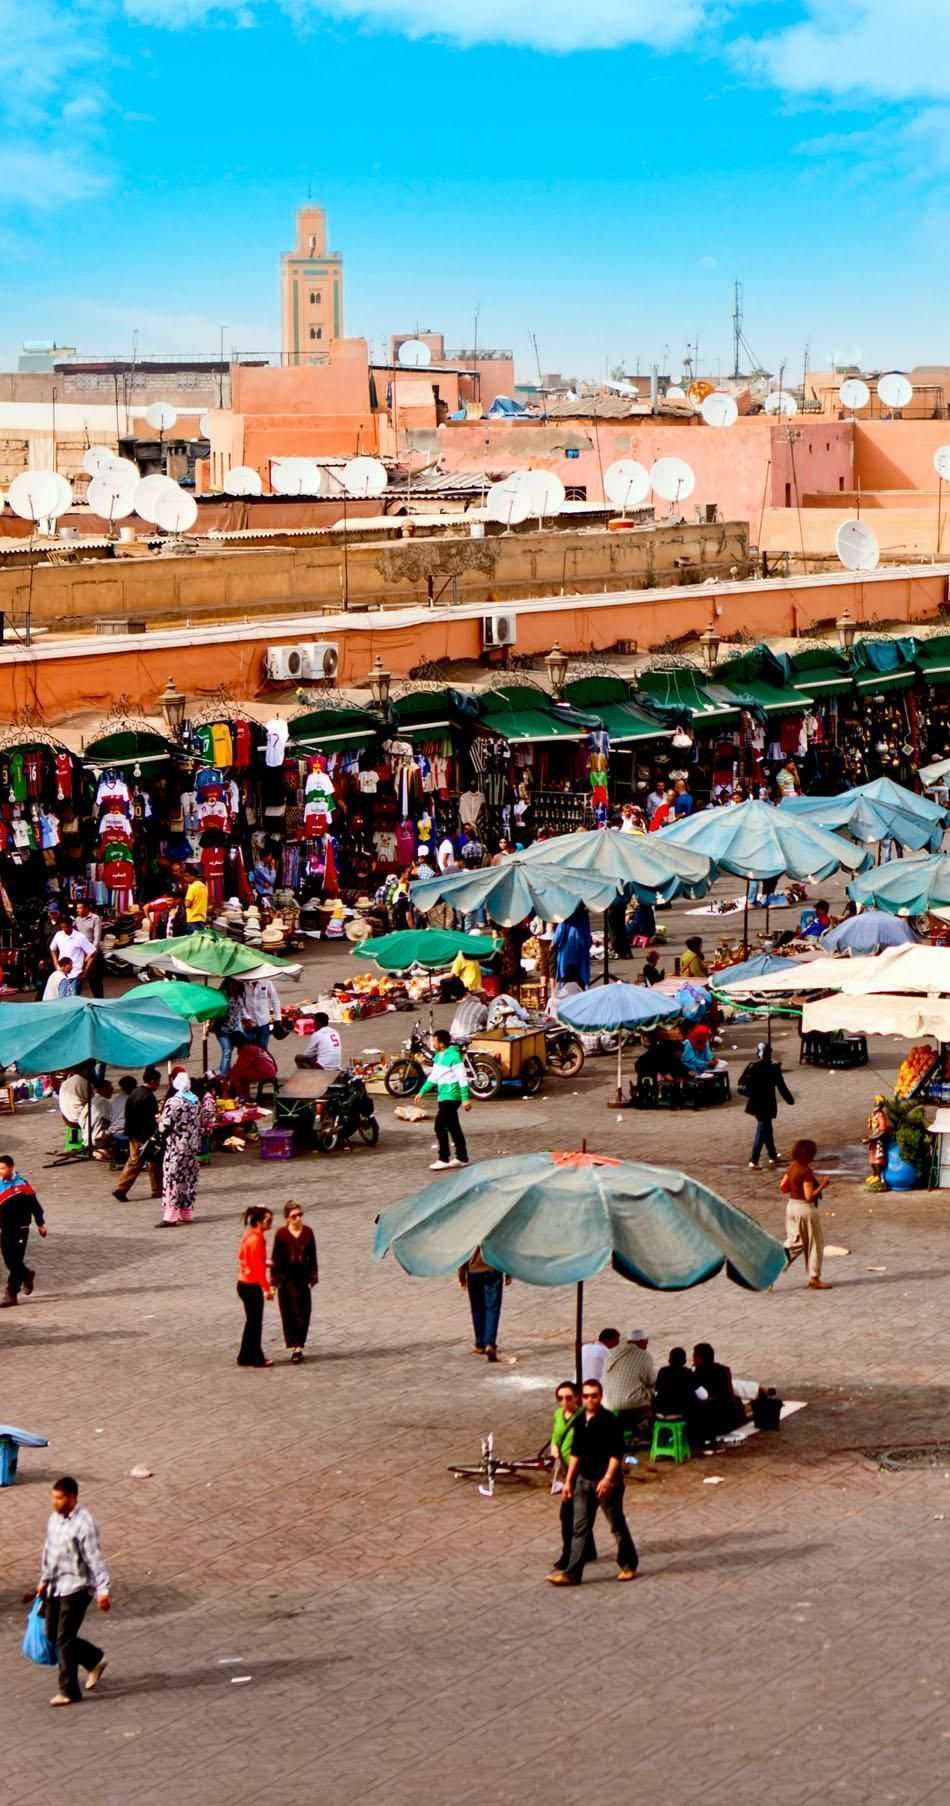 Djemaa el Fna - square and market place in Marrakesh's medina quarter, Marrakesh, Morocco | 20 Photos that Prove Morocco is a Dream Destination